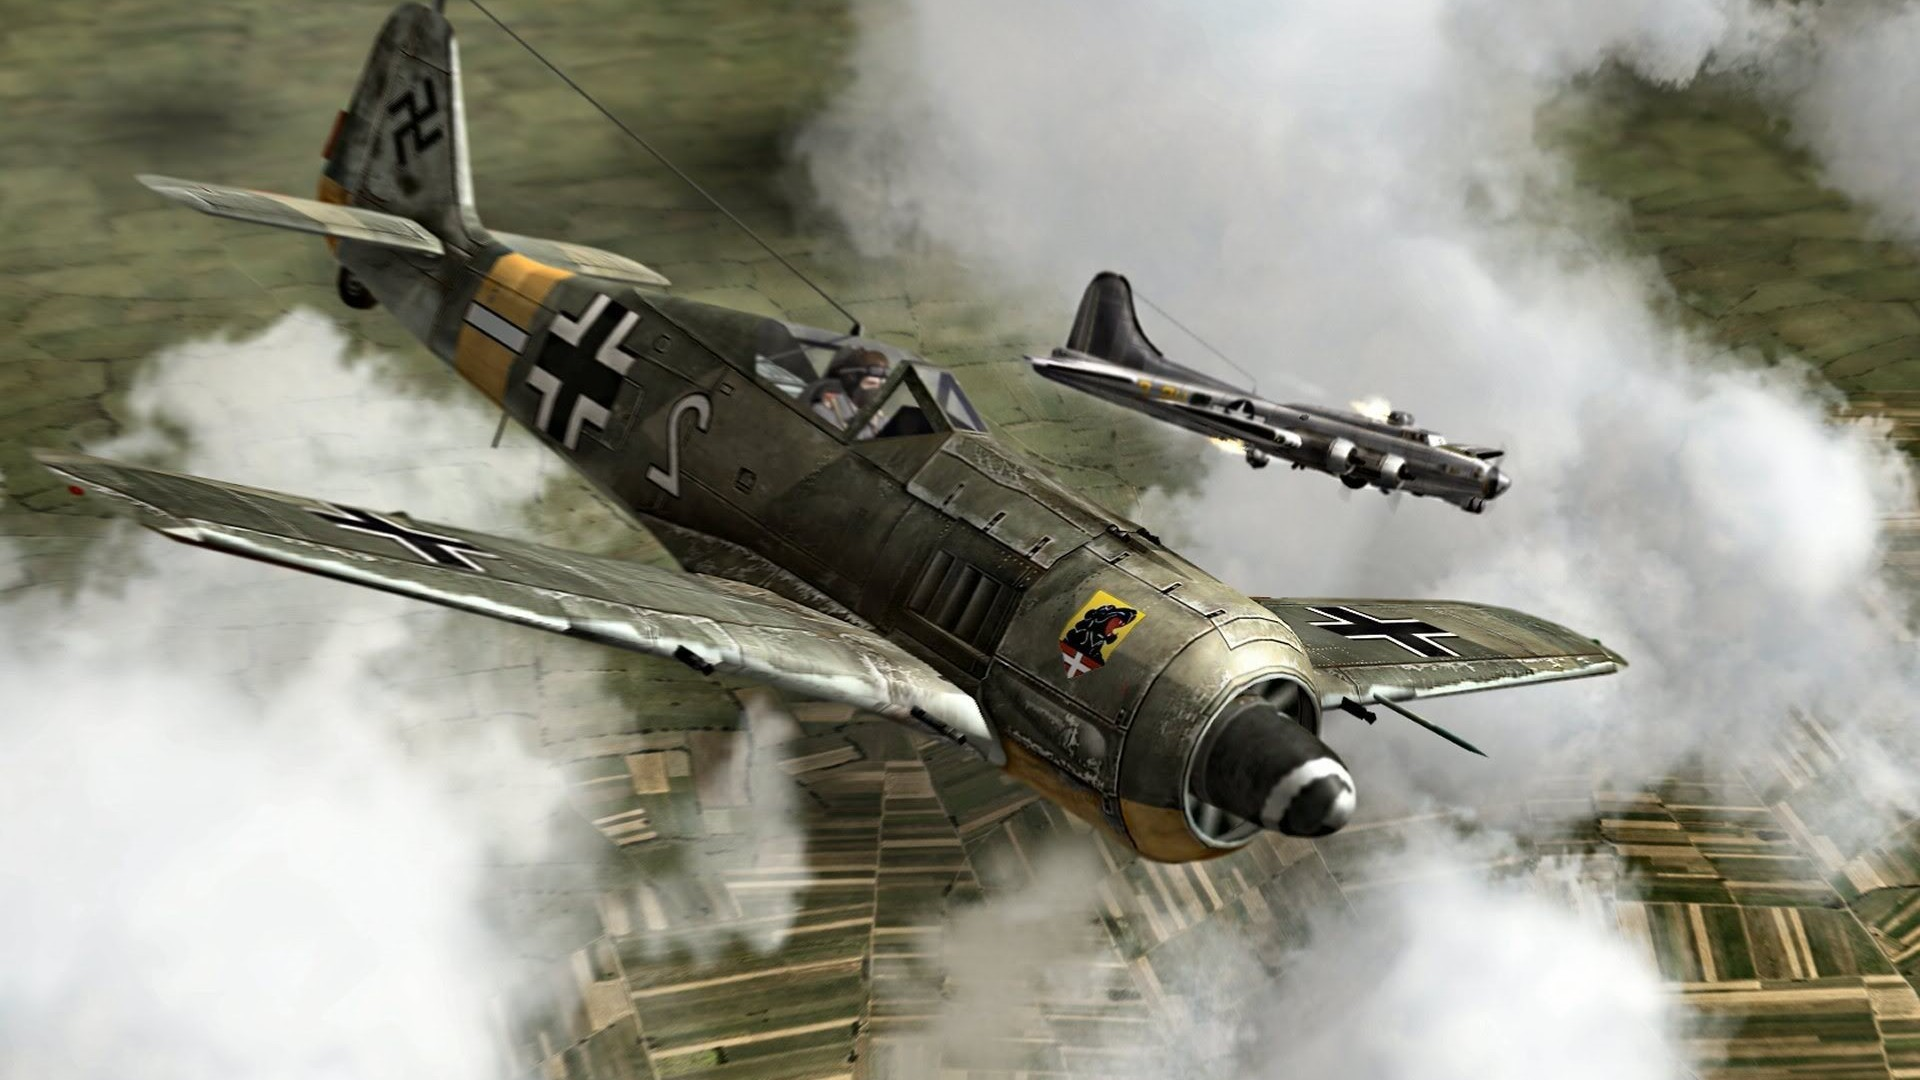 World War II, Fw 190, Focke Wulf, Luftwaffe, Germany, Military, Military  Aircraft, Airplane Wallpapers HD / Desktop and Mobile Backgrounds